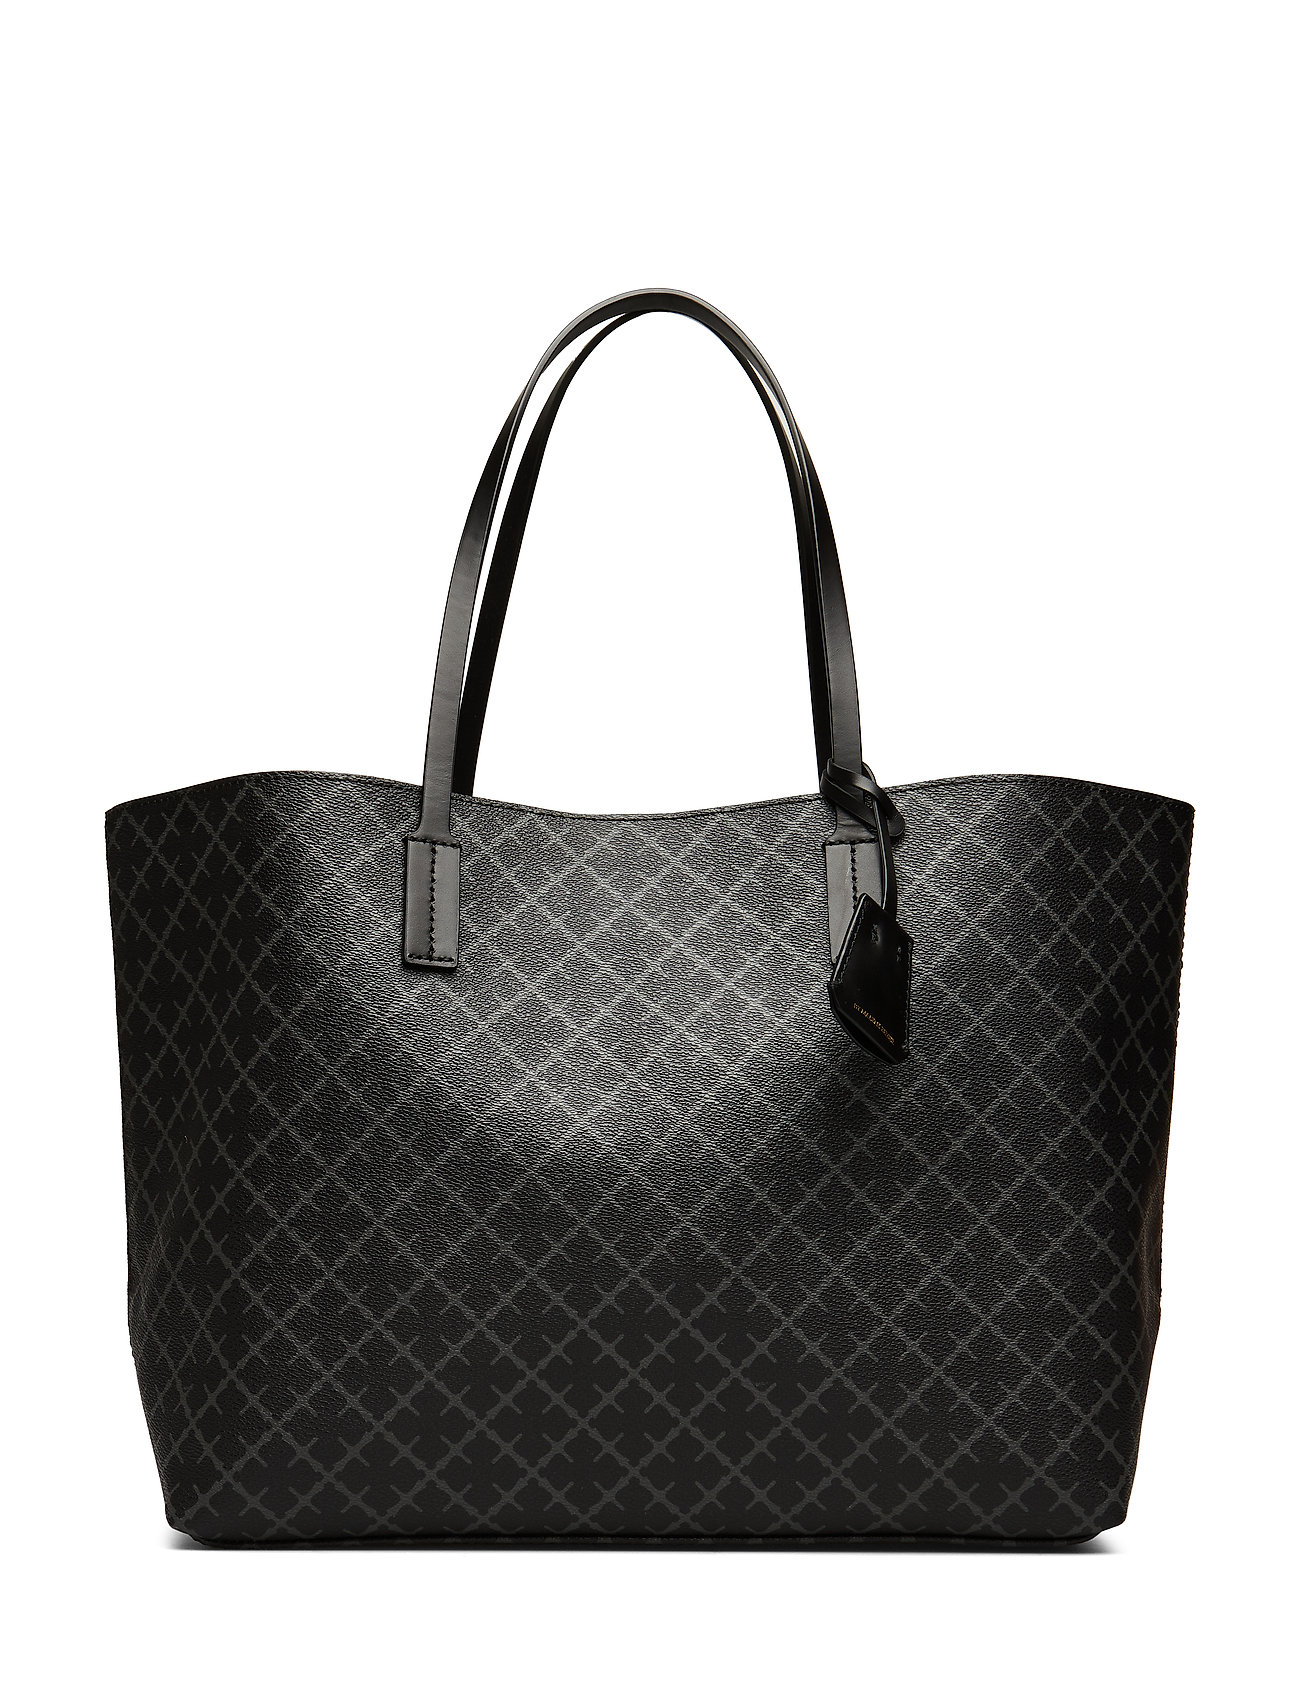 Image of Abigail Bags Shoppers Fashion Shoppers Sort By Malene Birger (3293915361)